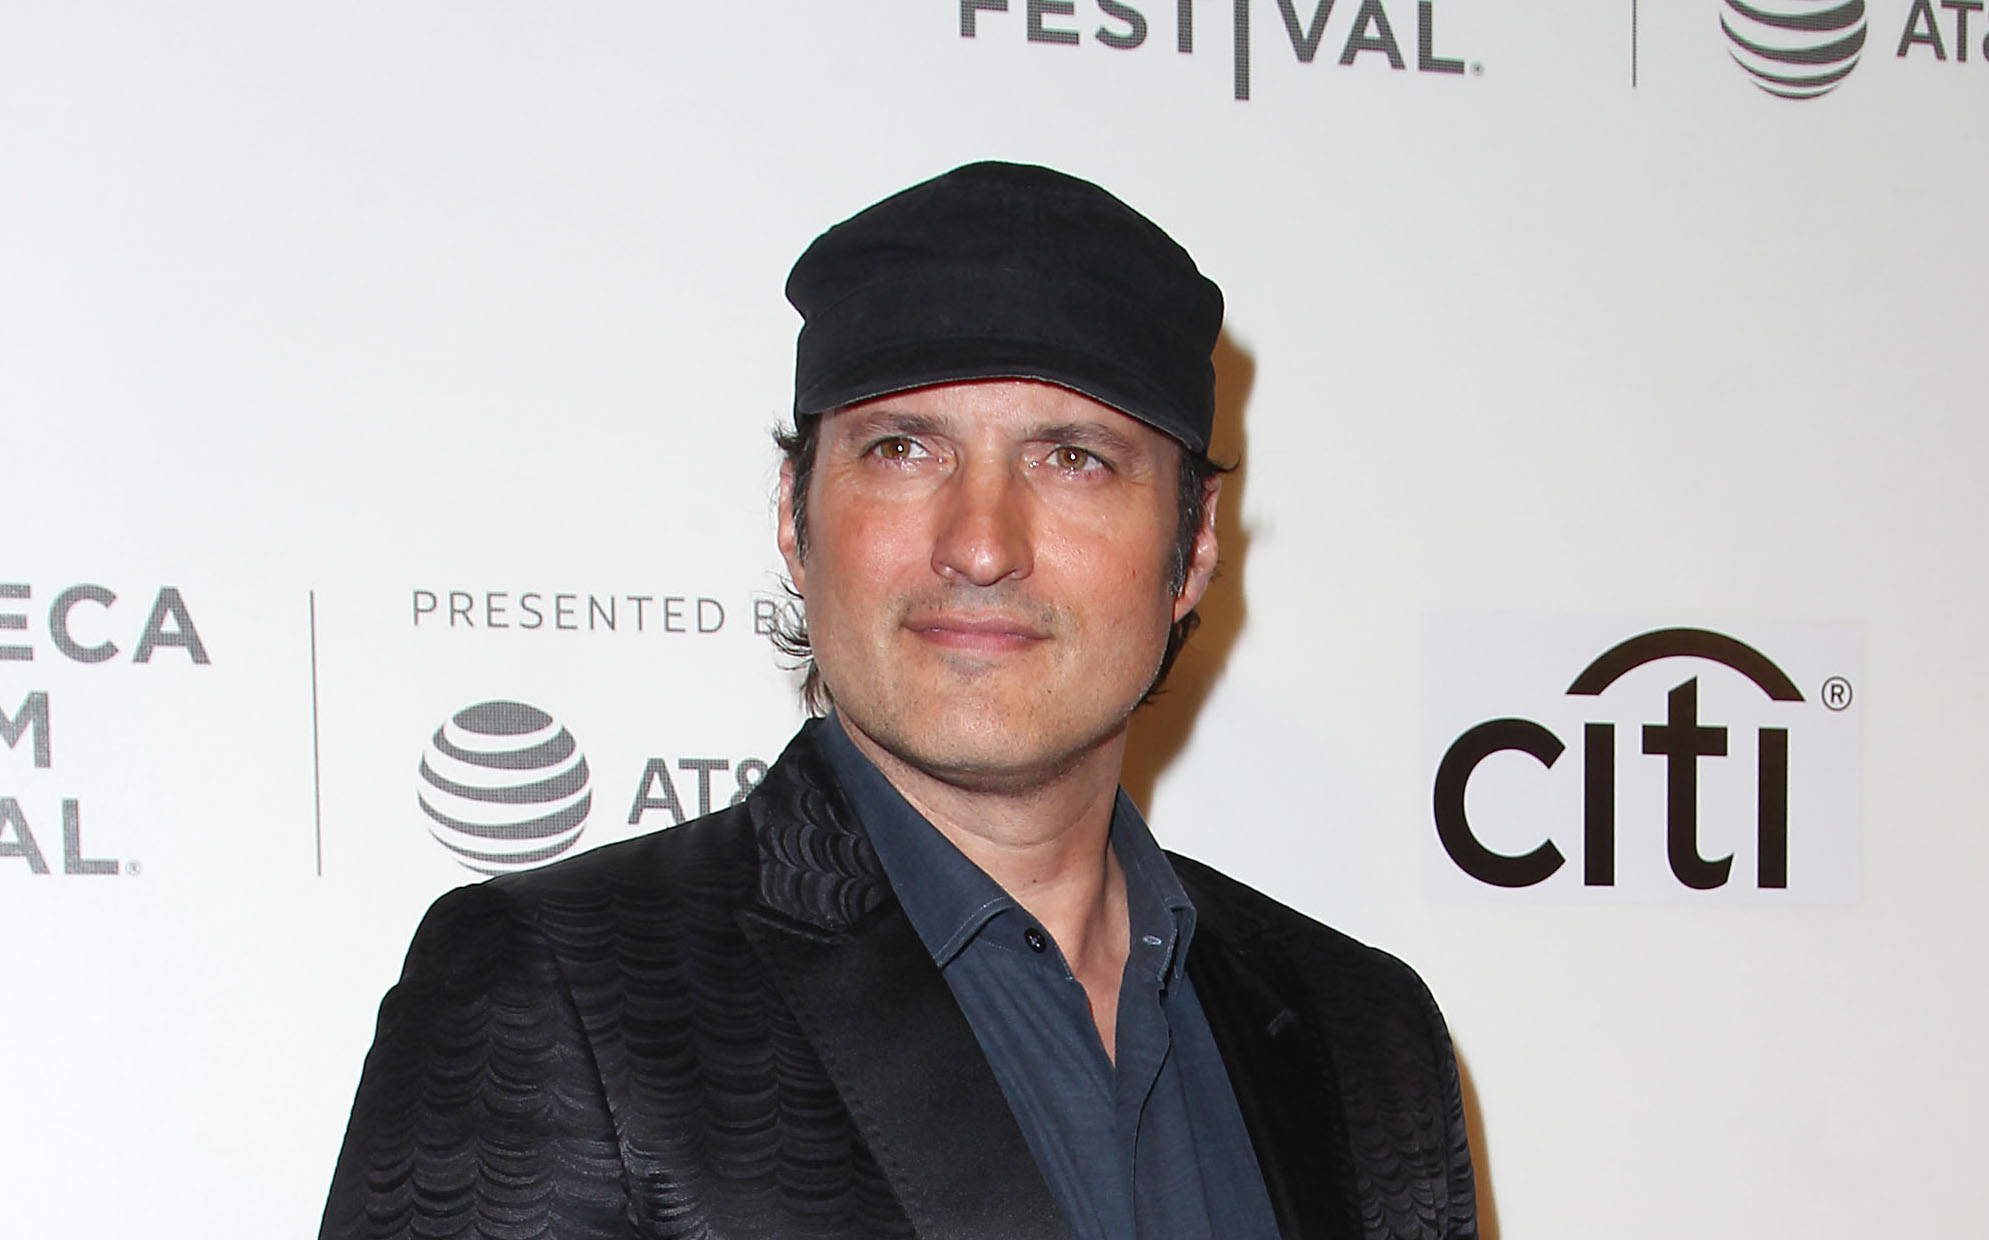 SXSW 2019 Film: 10 Promising Selections, From Robert Rodriguez to Beto O'Rourke